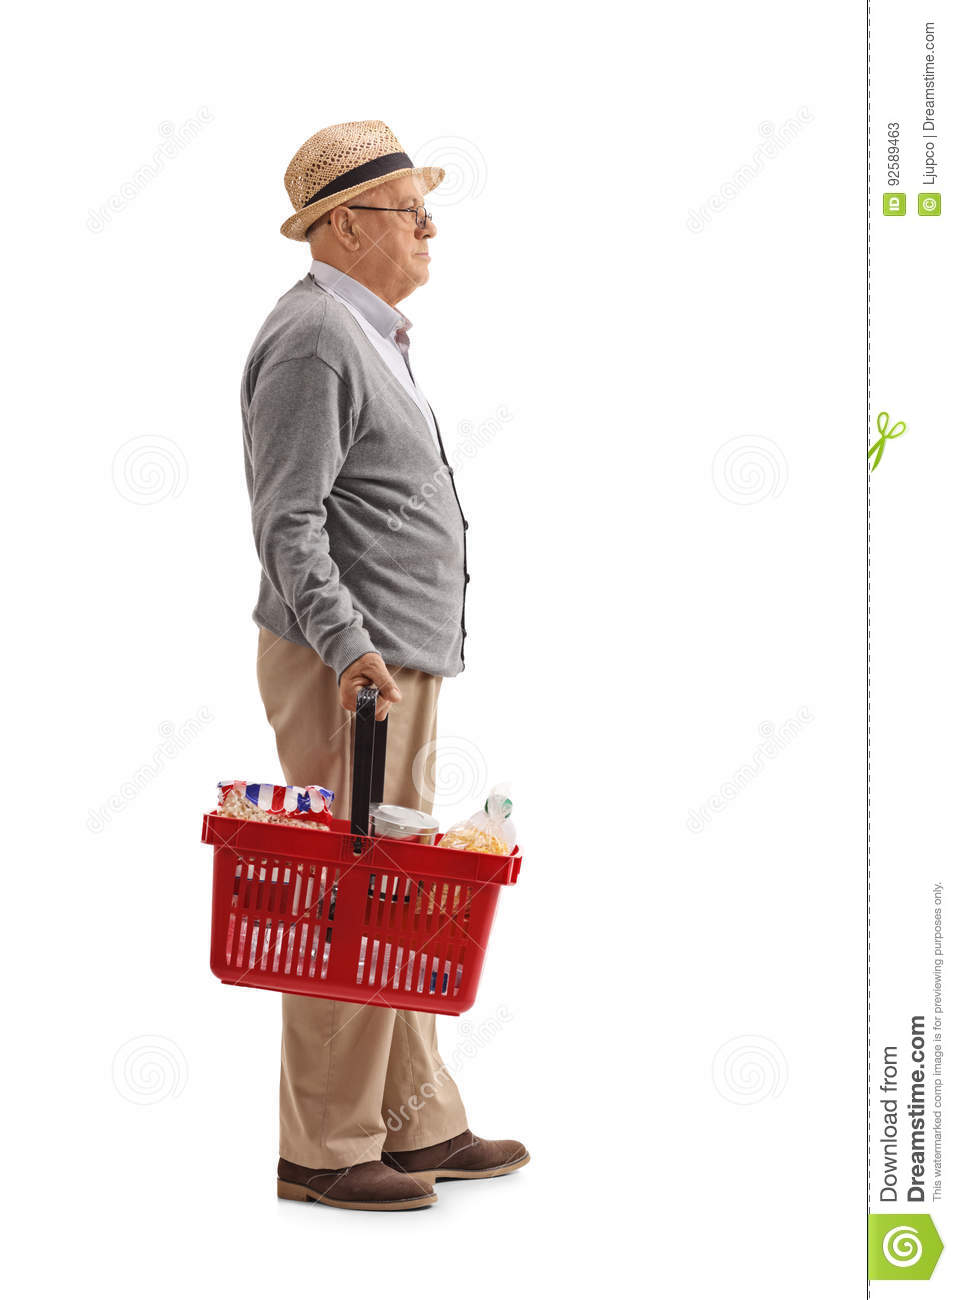 Elderly man with a shopping basket waiting in line